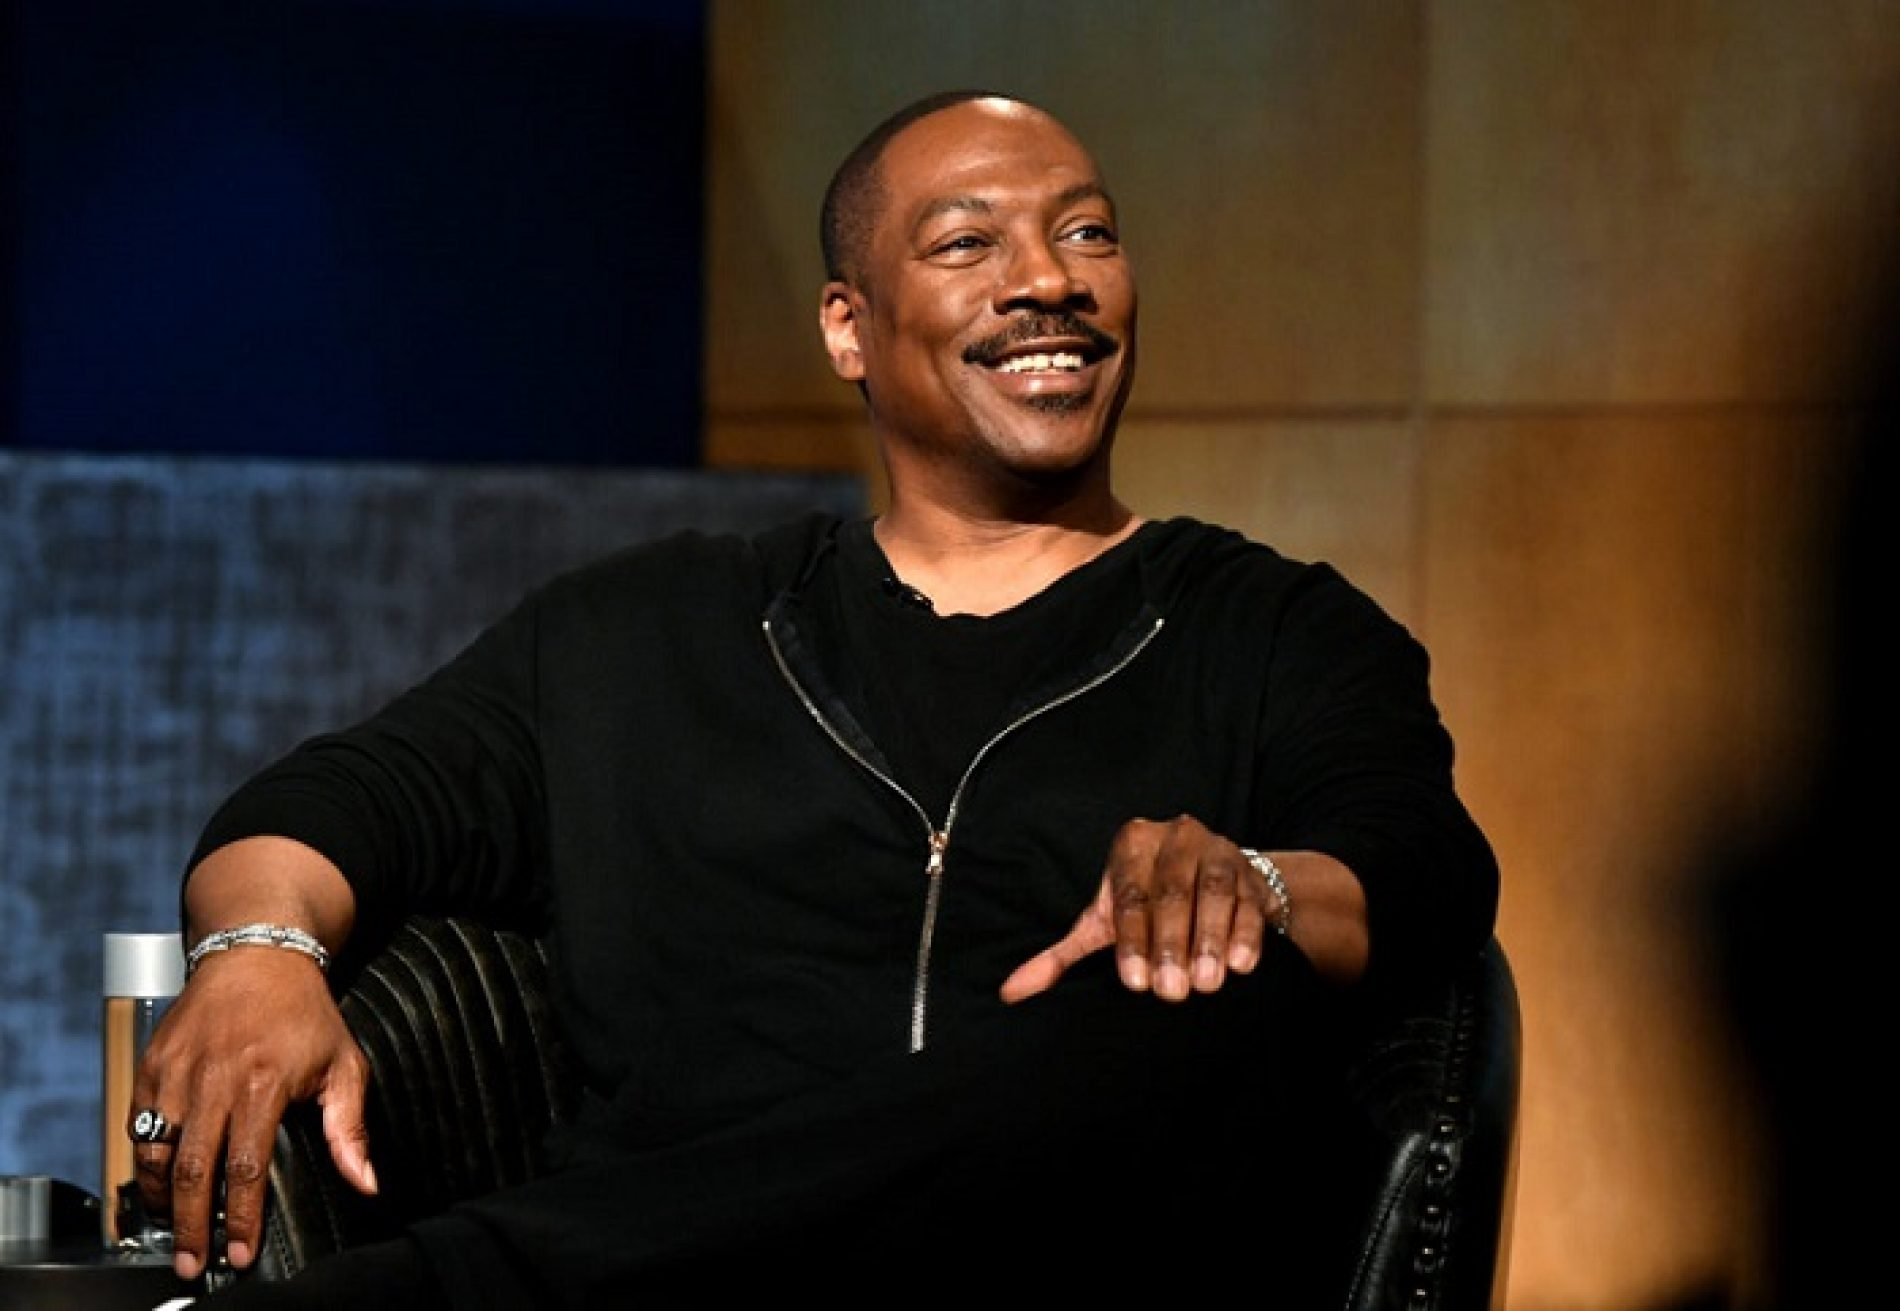 Eddie Murphy talks about regretting his 'ignorant' old jokes about AIDS and homosexuality